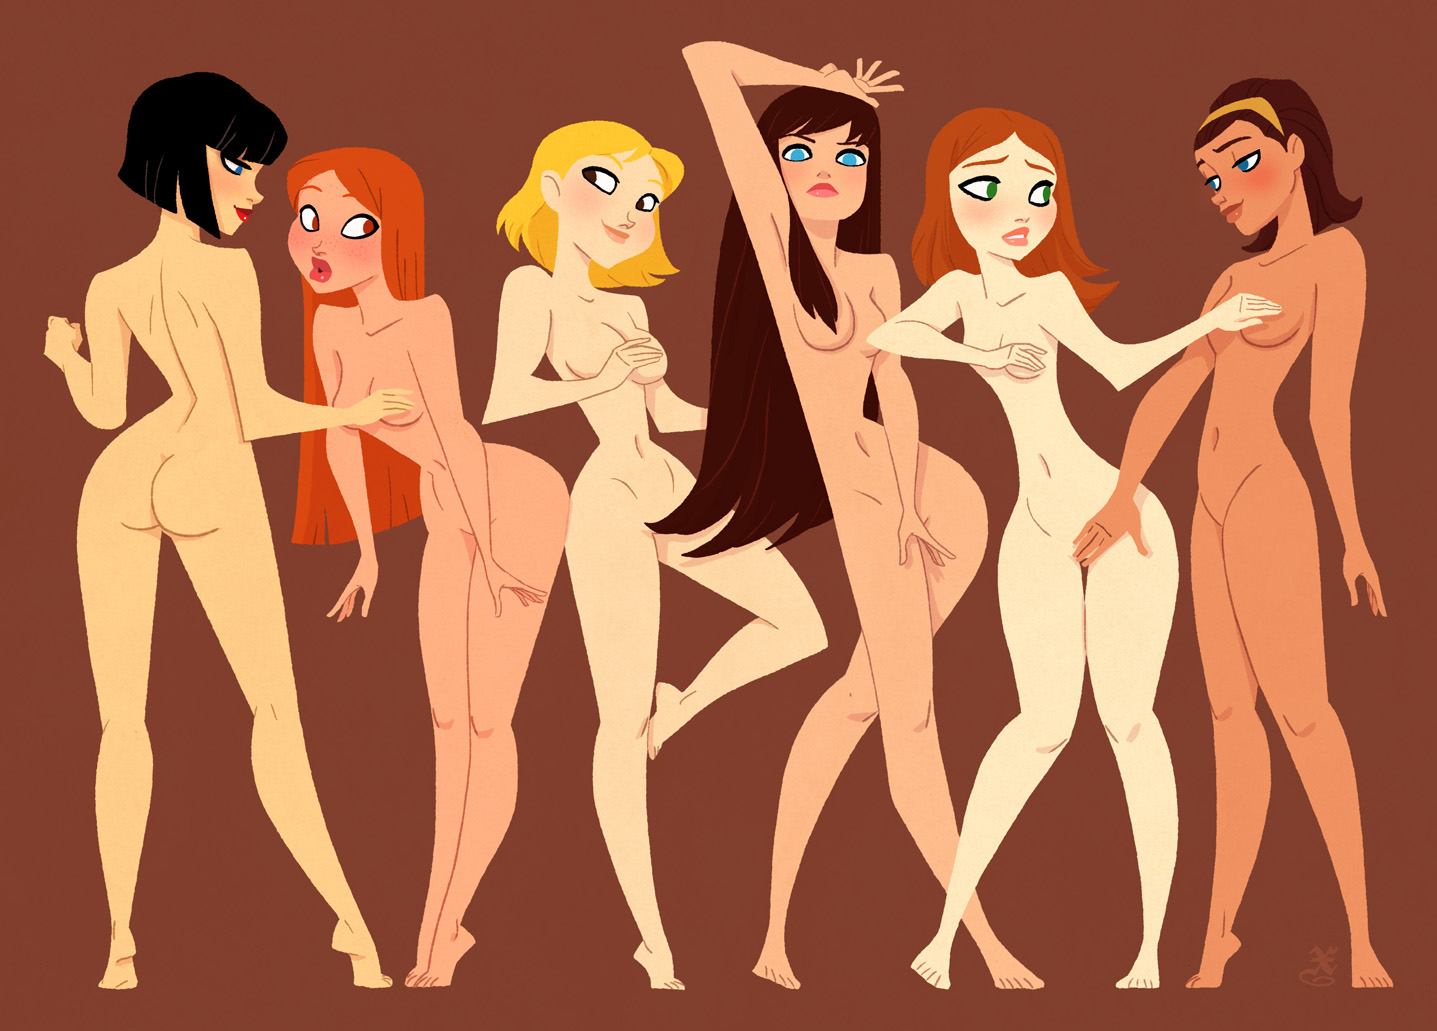 Cartoon naked woman wallpapers sex download